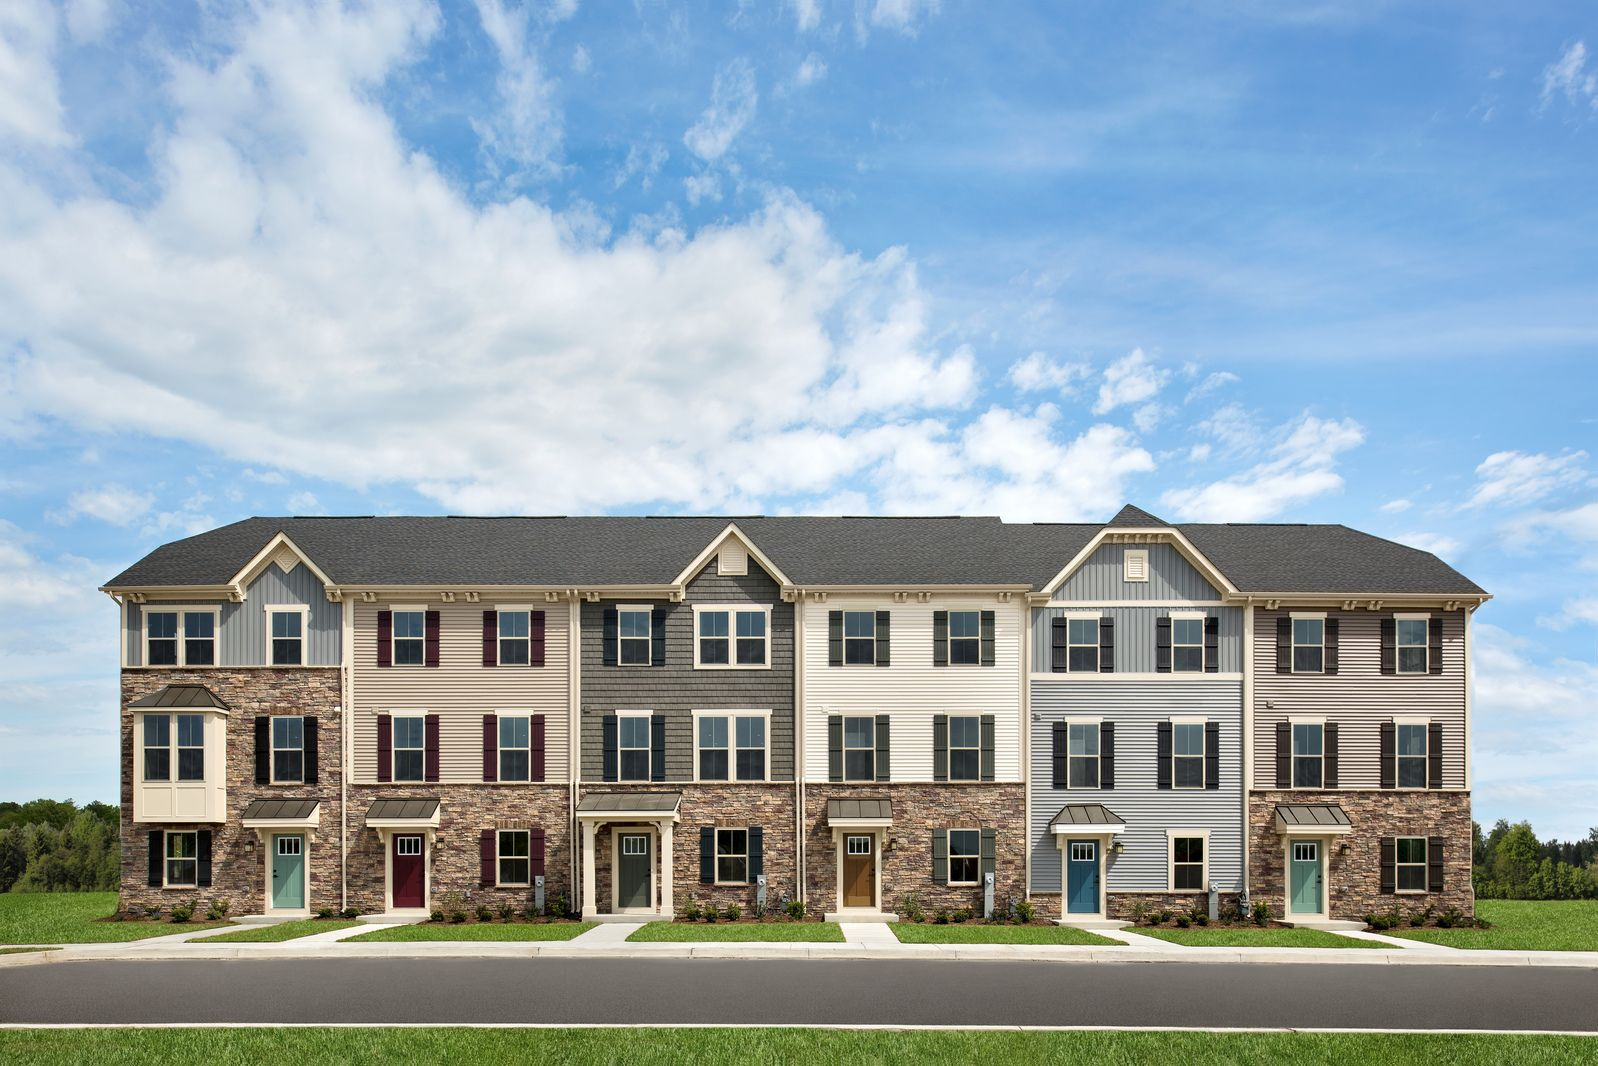 Welcome to Laurel Grove:The lowest priced new homes in Pine Township with planned pool, clubhouse, & walking trails. Luxury open concept townhomes.Click here to schedule your visit!